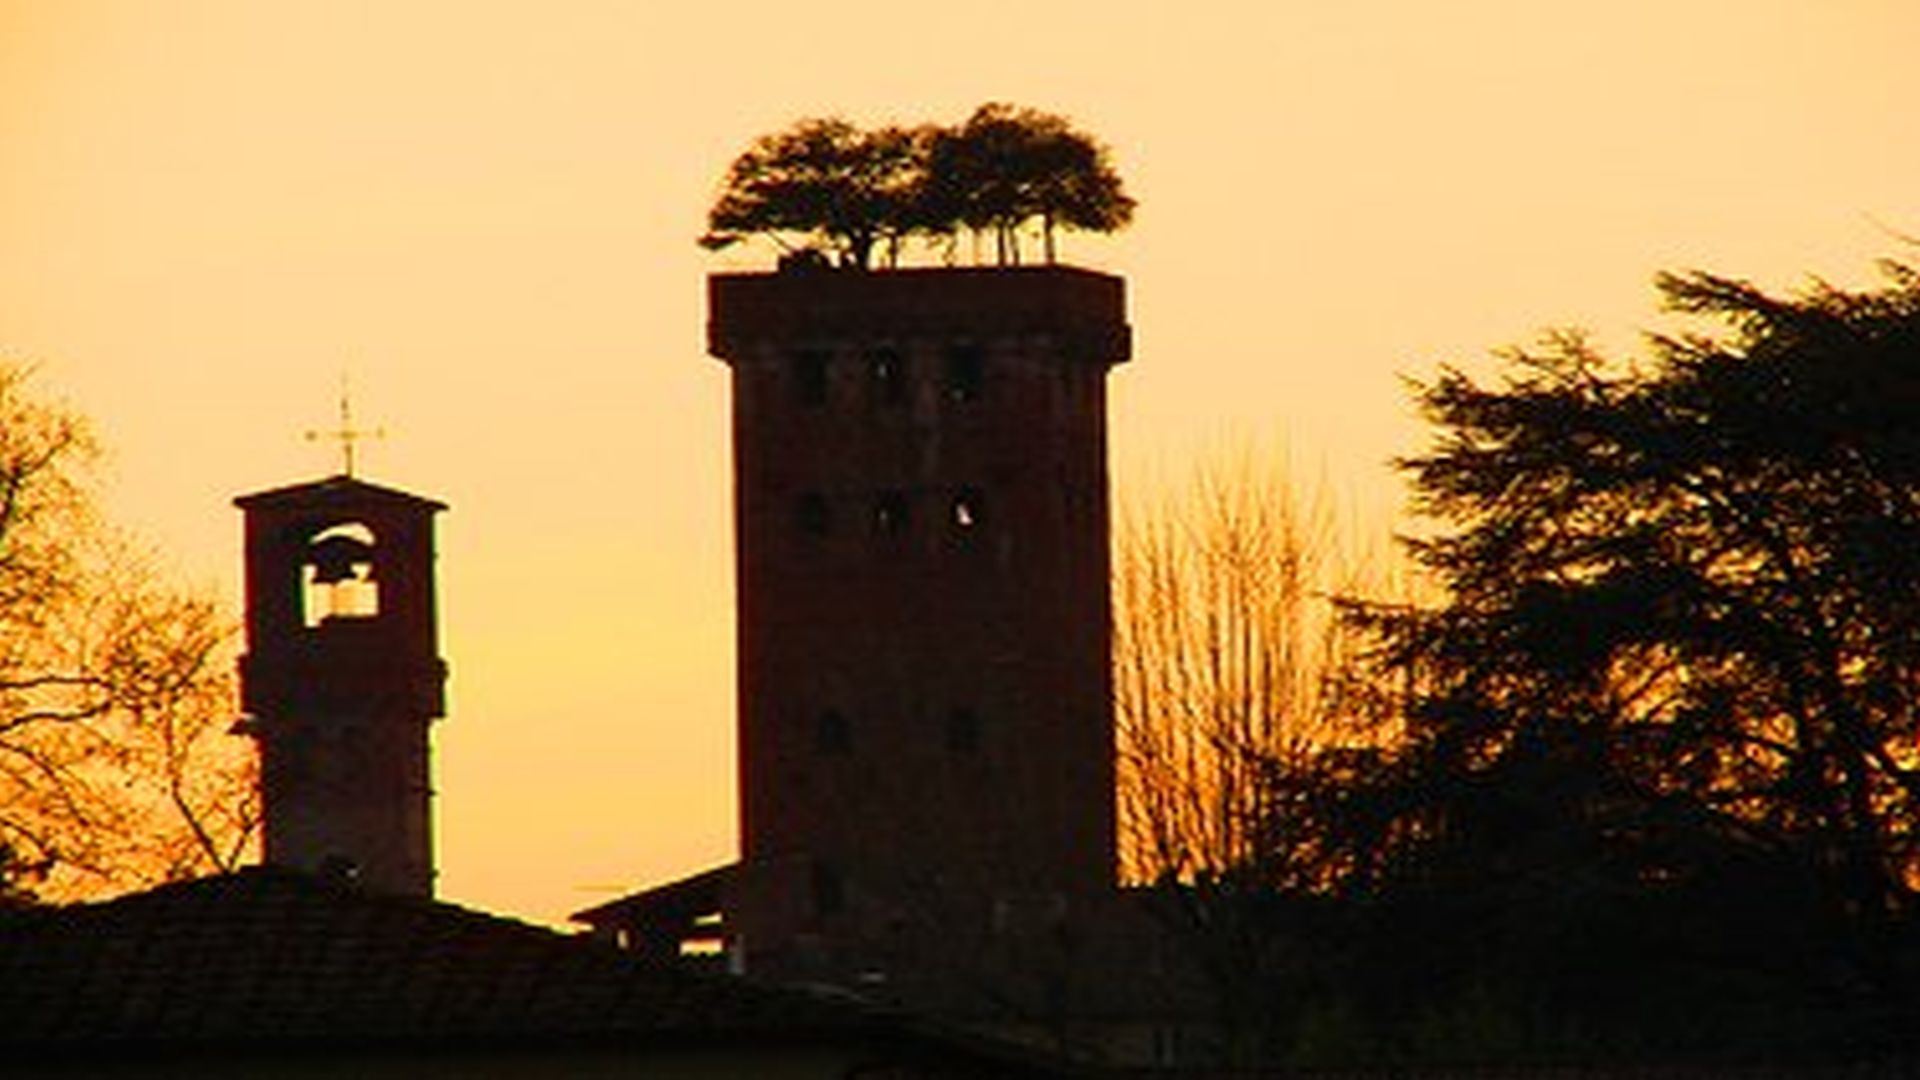 profiles of the guinigi tower and the hours in lucca